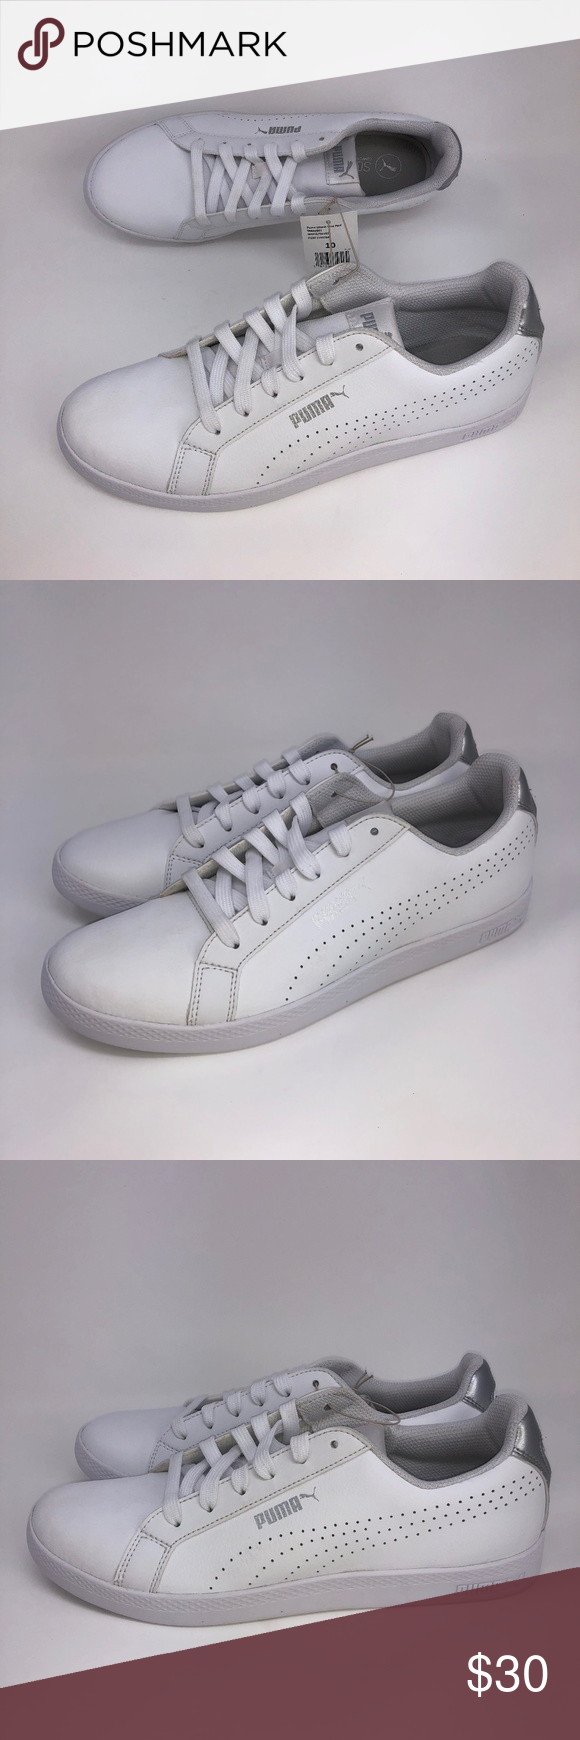 6986d3188e5e Puma Women s Smash Perf Met Shoes White Size 8-10 Puma Women s Smash Perf  Metallic Shoes White Silver Size 10 Rubber sole Shaft measures  approximately ...